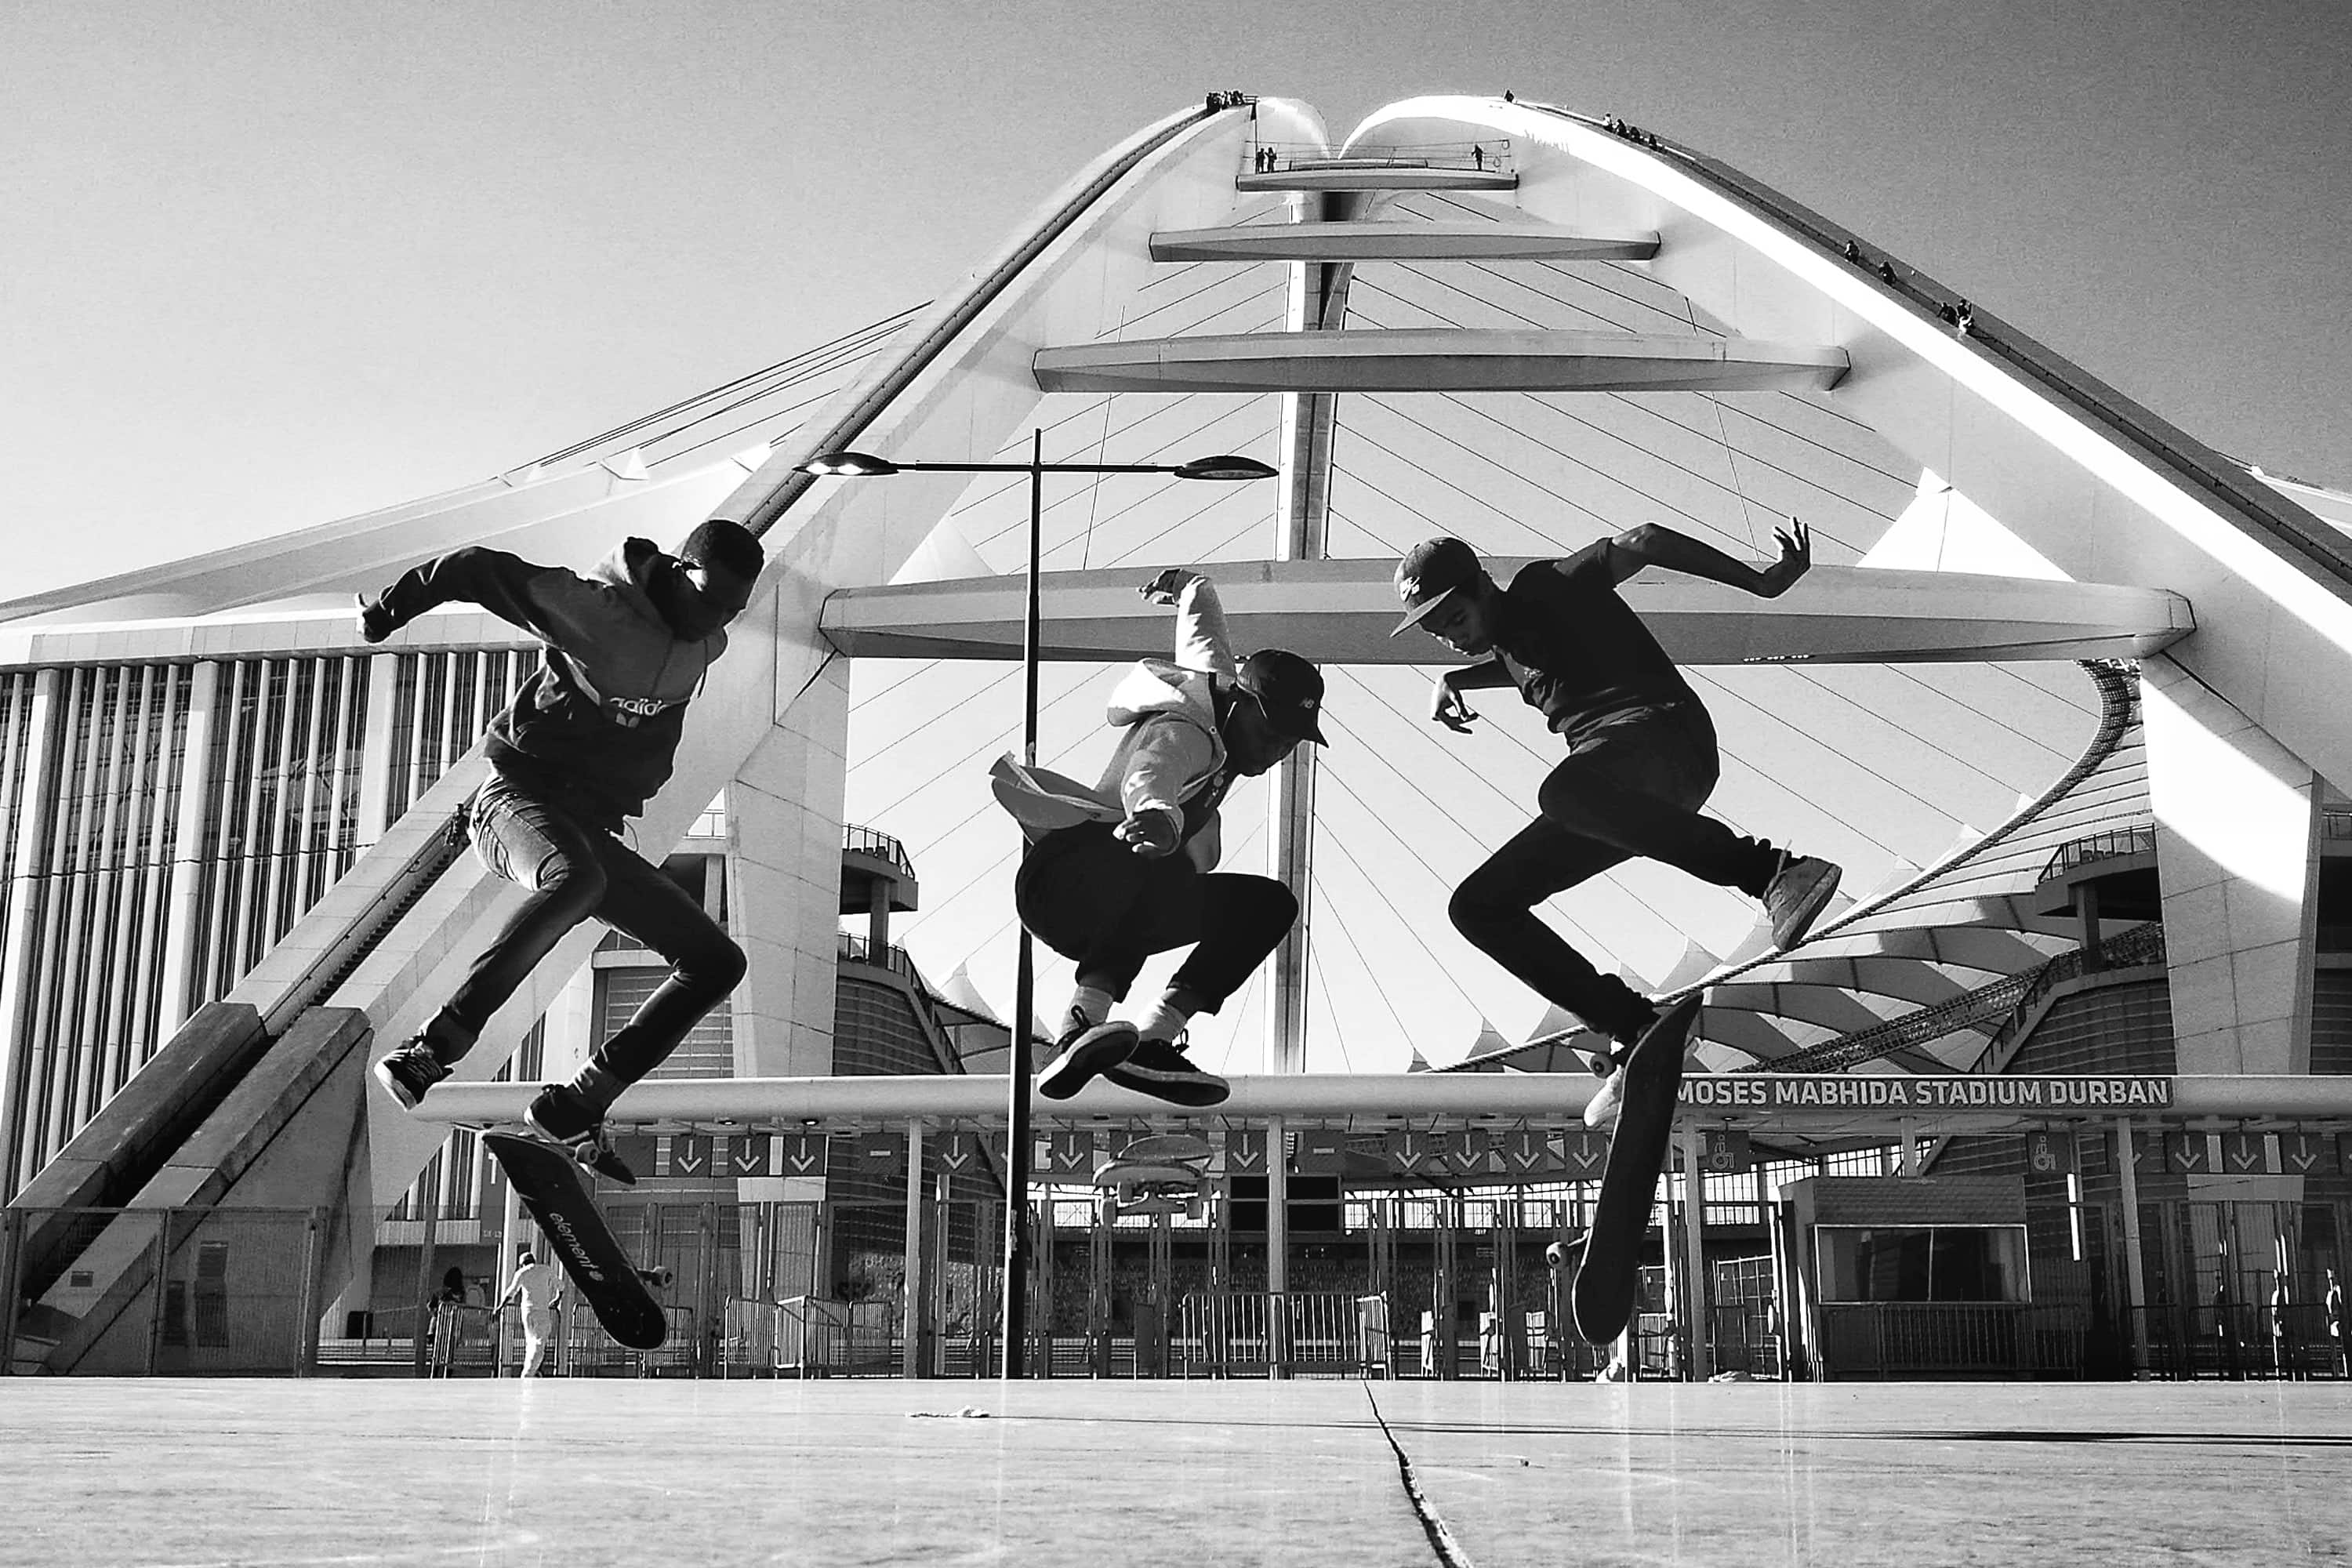 skateboarders synchronize their kick flips at the moses mabhida soccer stadium in durban, kzn